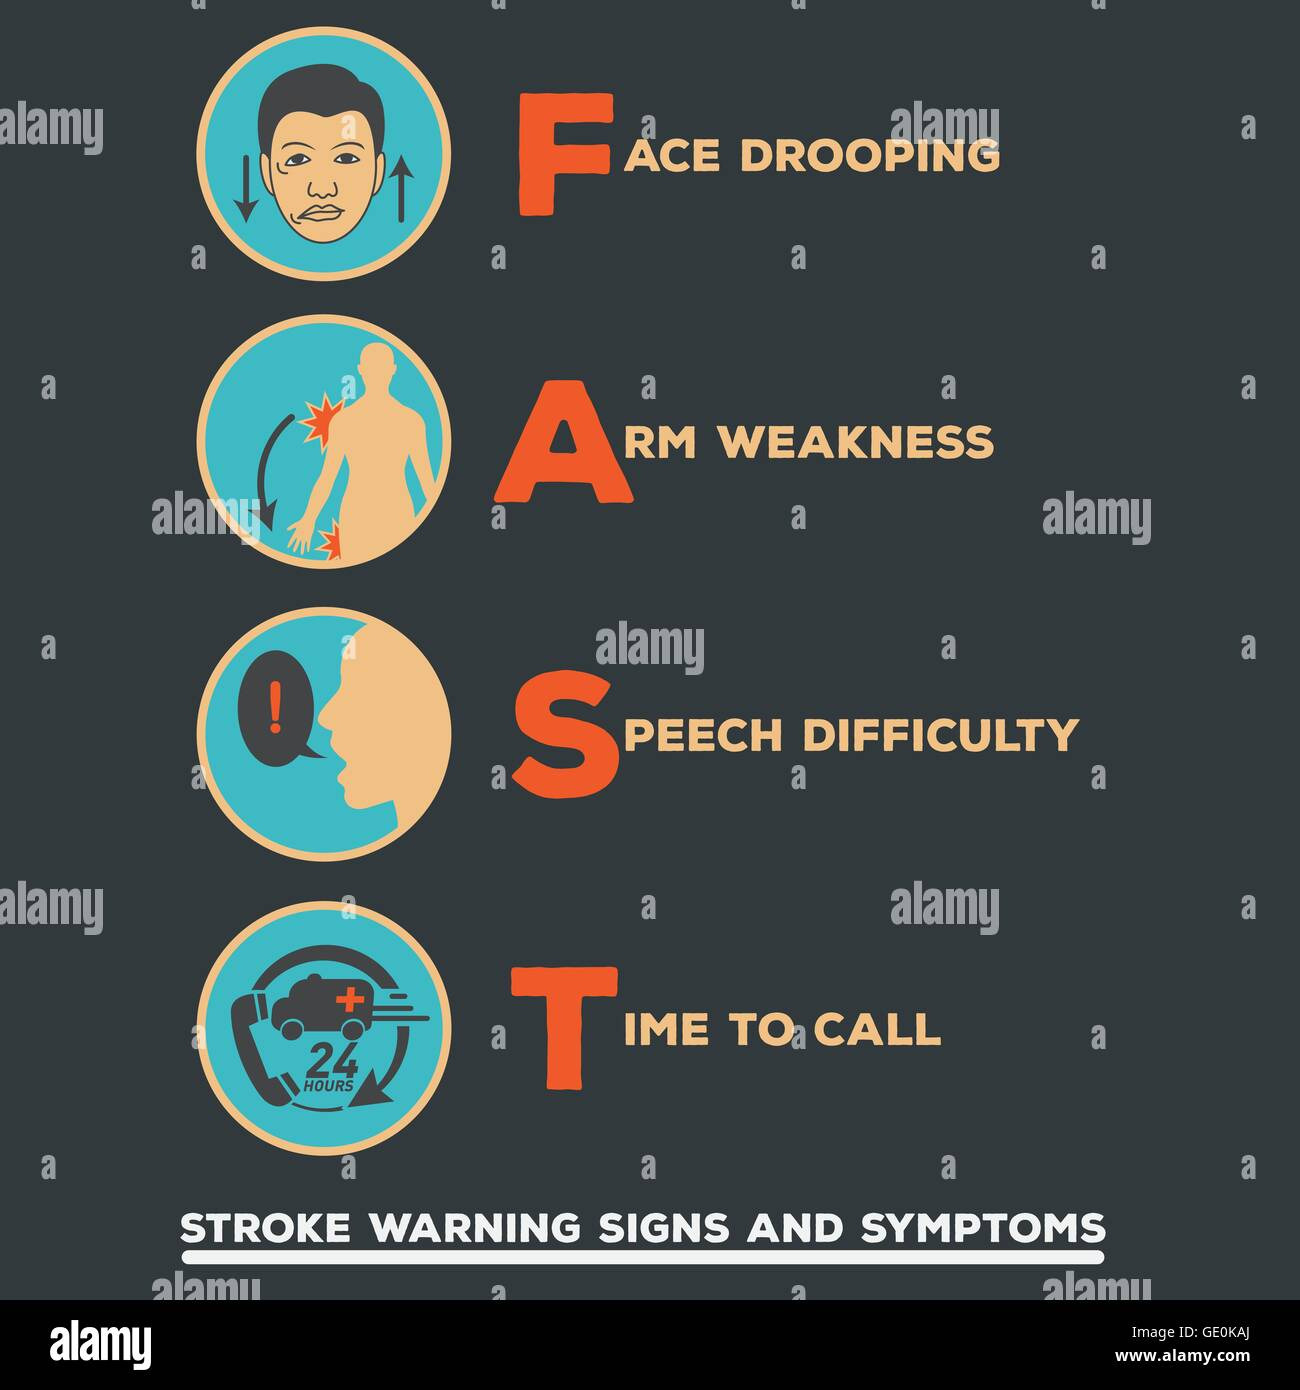 stroke warning signs and symptoms - Stock Image